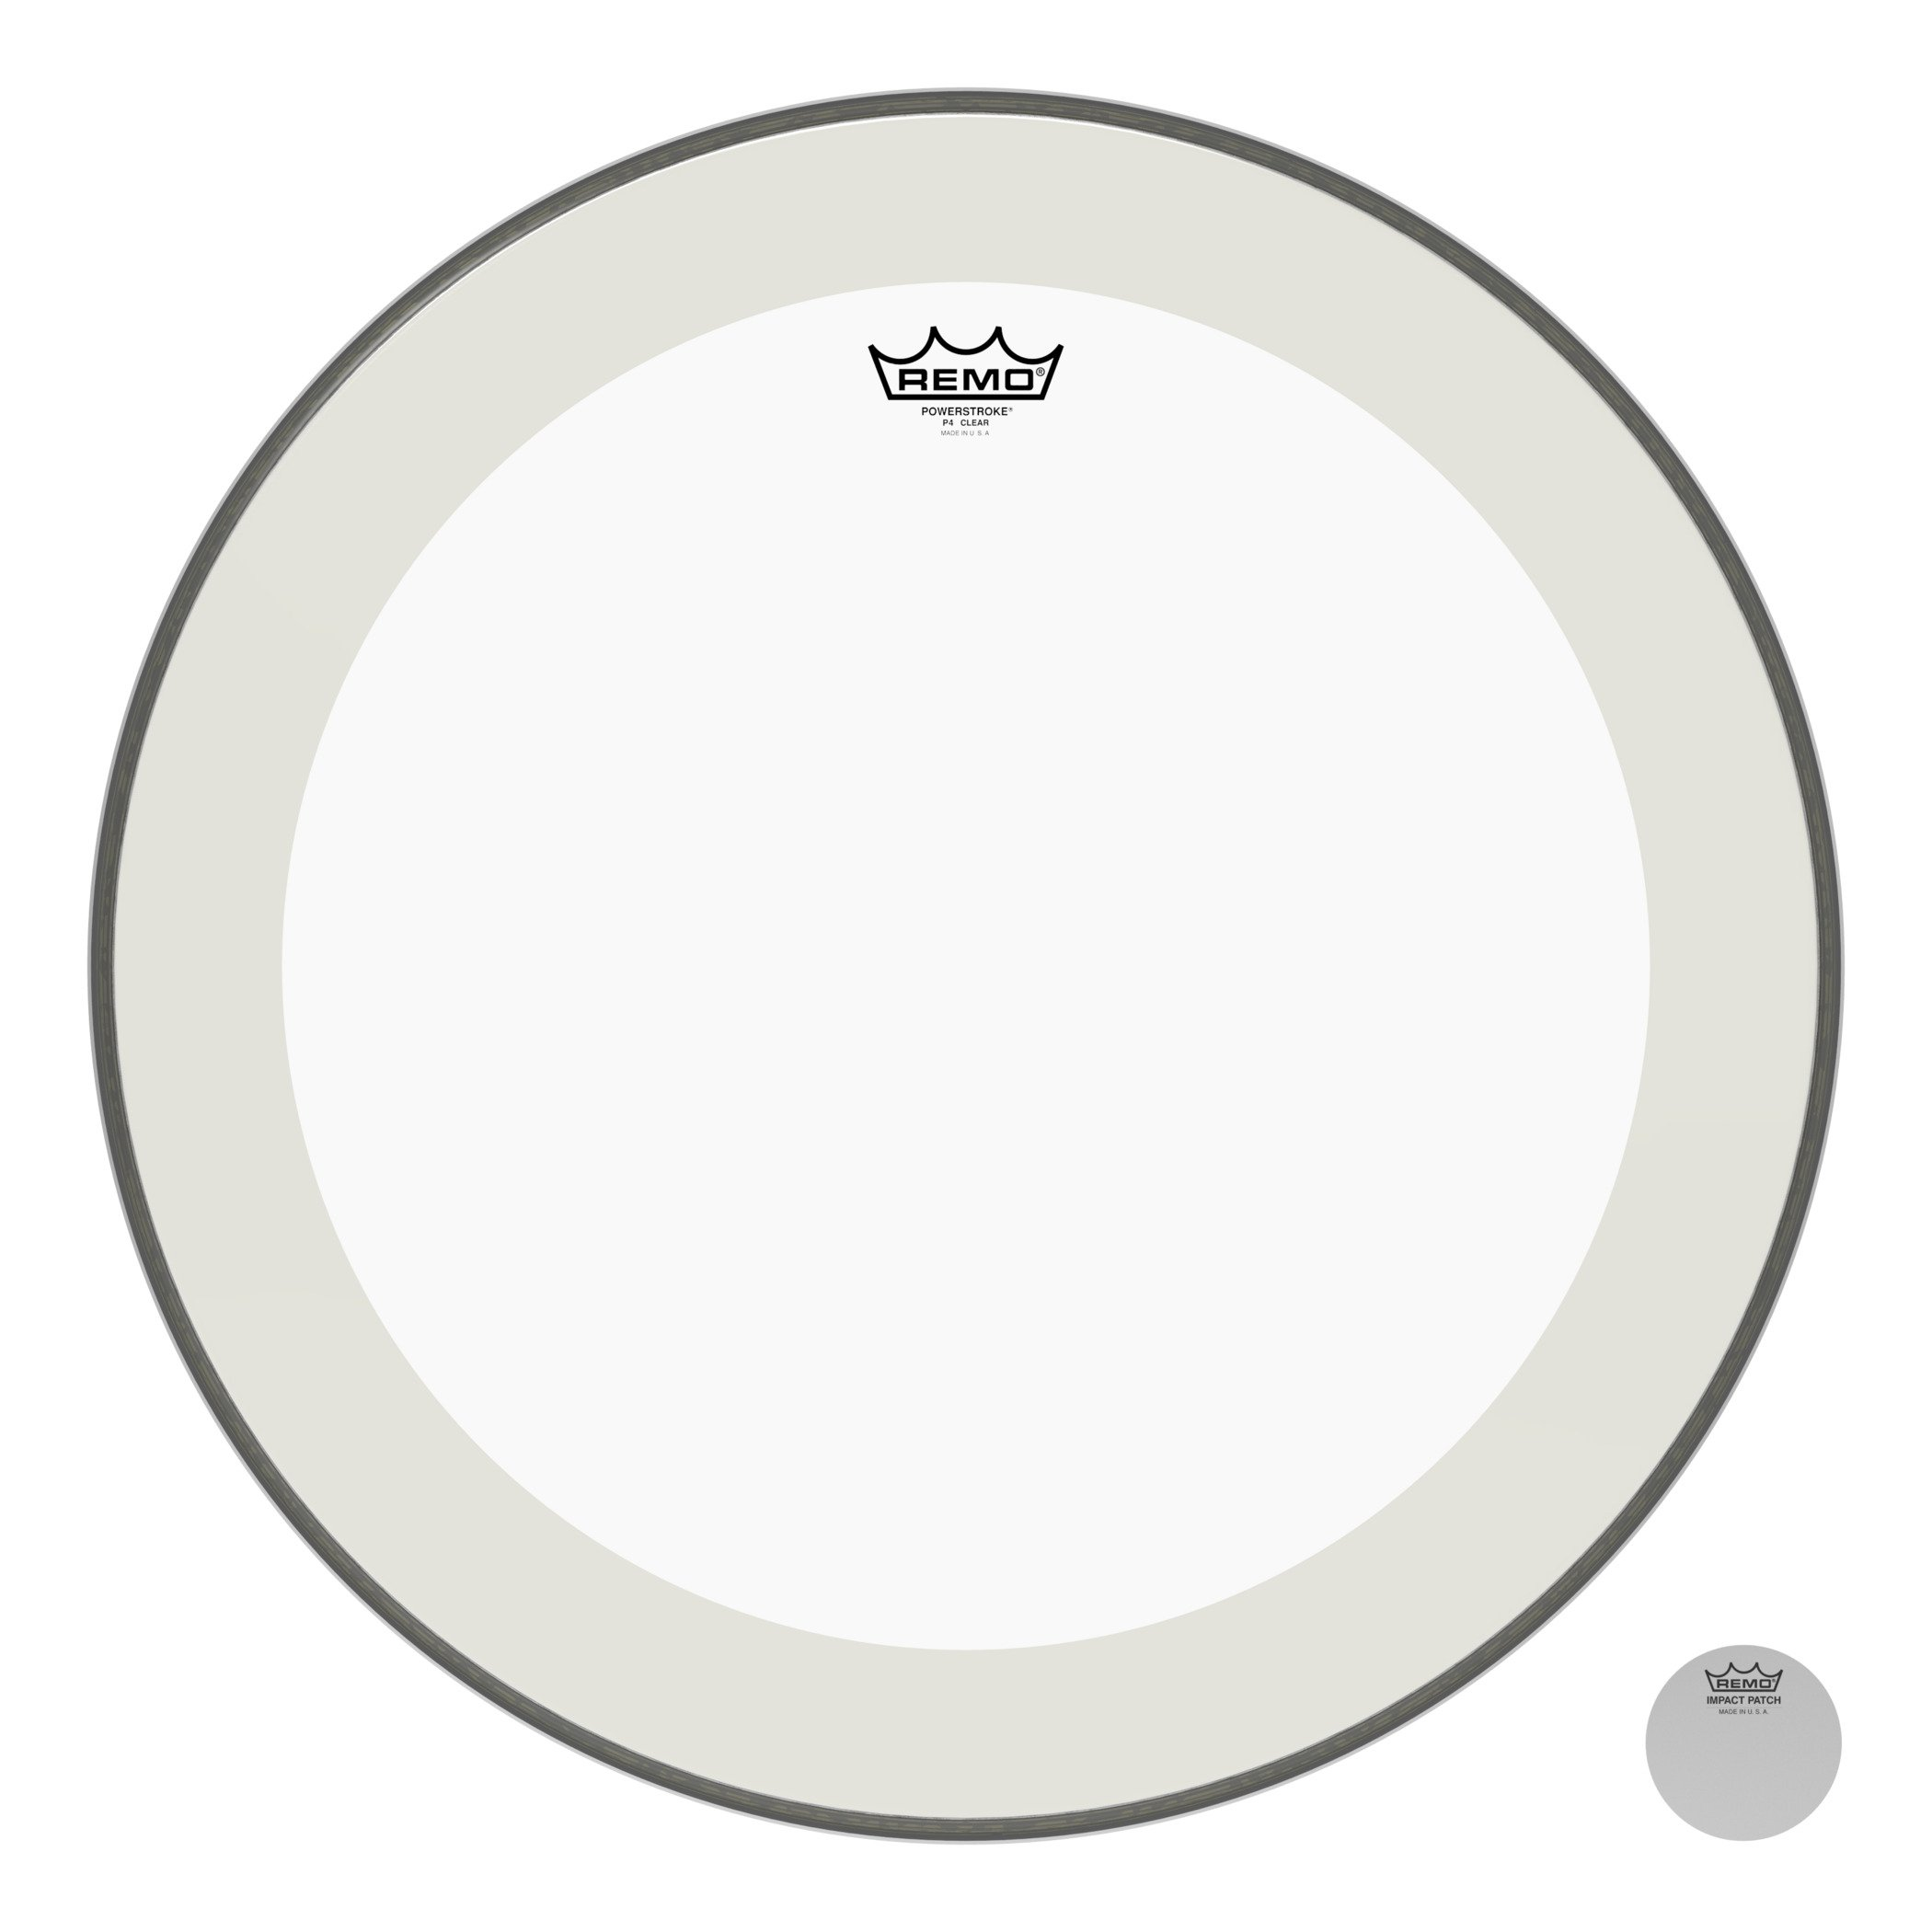 Remo P41322-C2 22-inch Bass Drum Heads